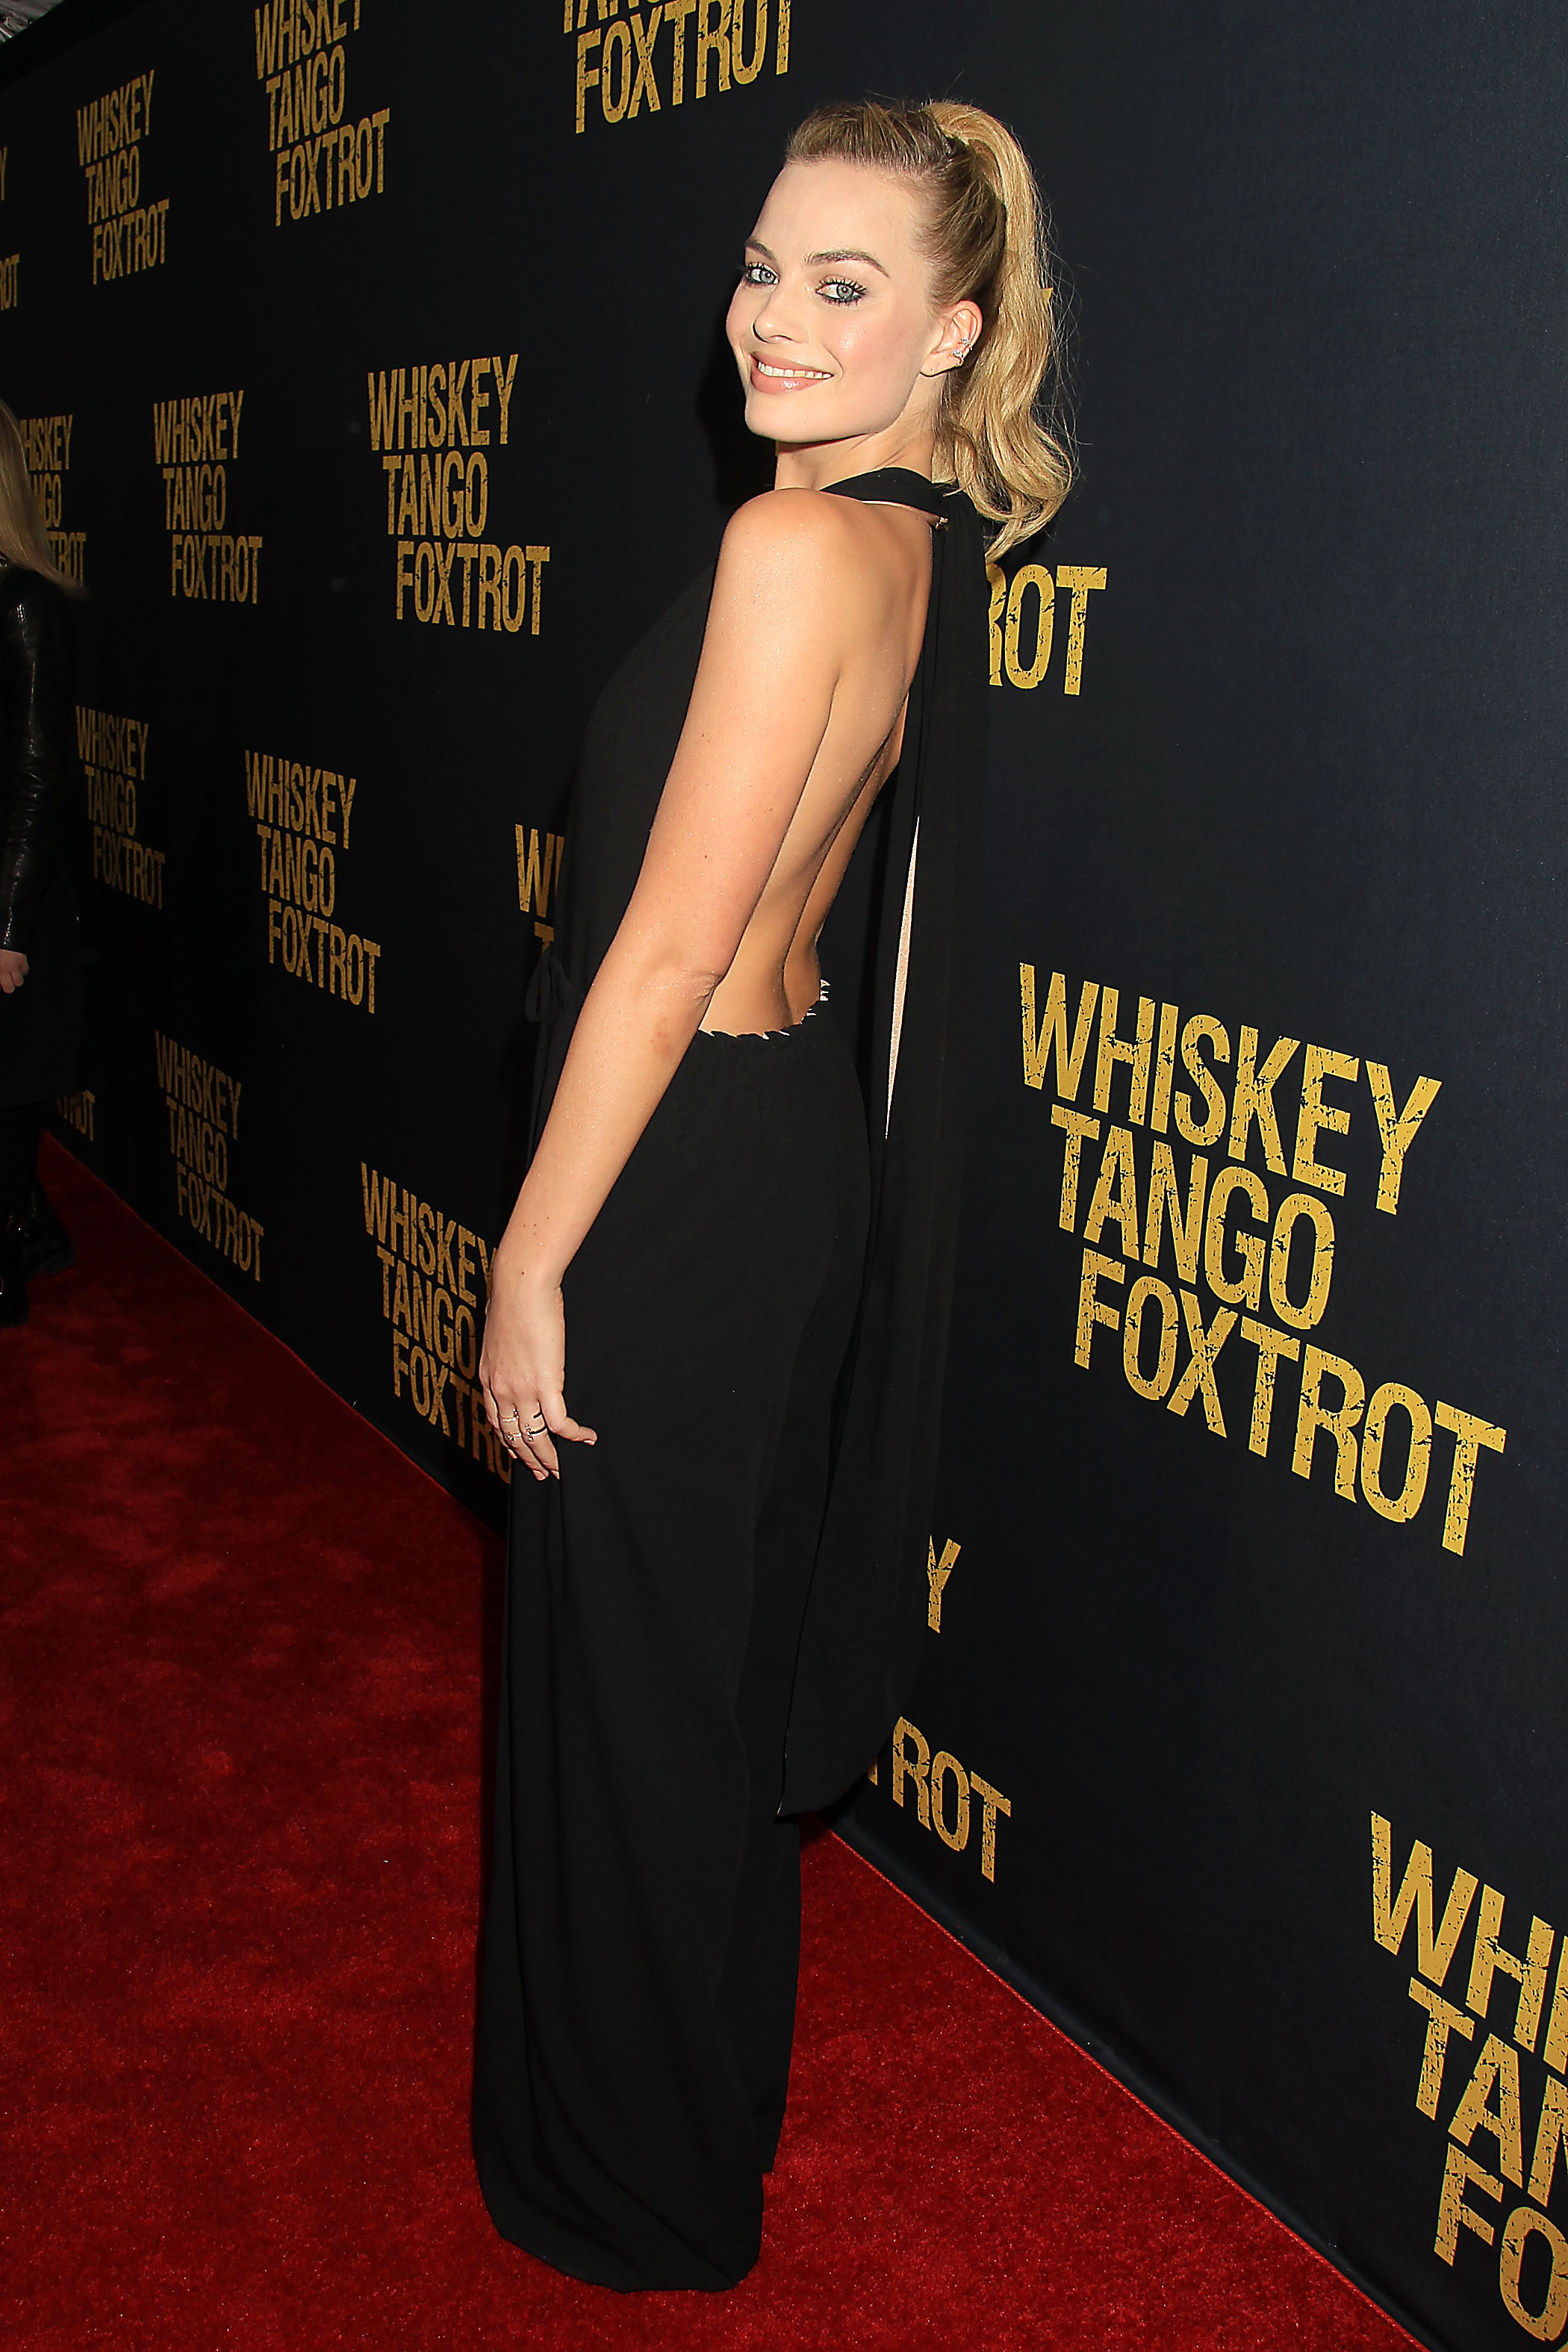 "New York, NY - 3/1/16 - Margot Robbie attends the Paramount Pictures World Premiere of ""WHISKEY TANGO FOXTROT"". The film stars Tina Fey, Margot Robbie, Martin Freeman, Billy Bob Thornton and Christopher Abbott. It opens in theaters March 4th, 2016. PHOTO by: Dave Allocca/Starpix"